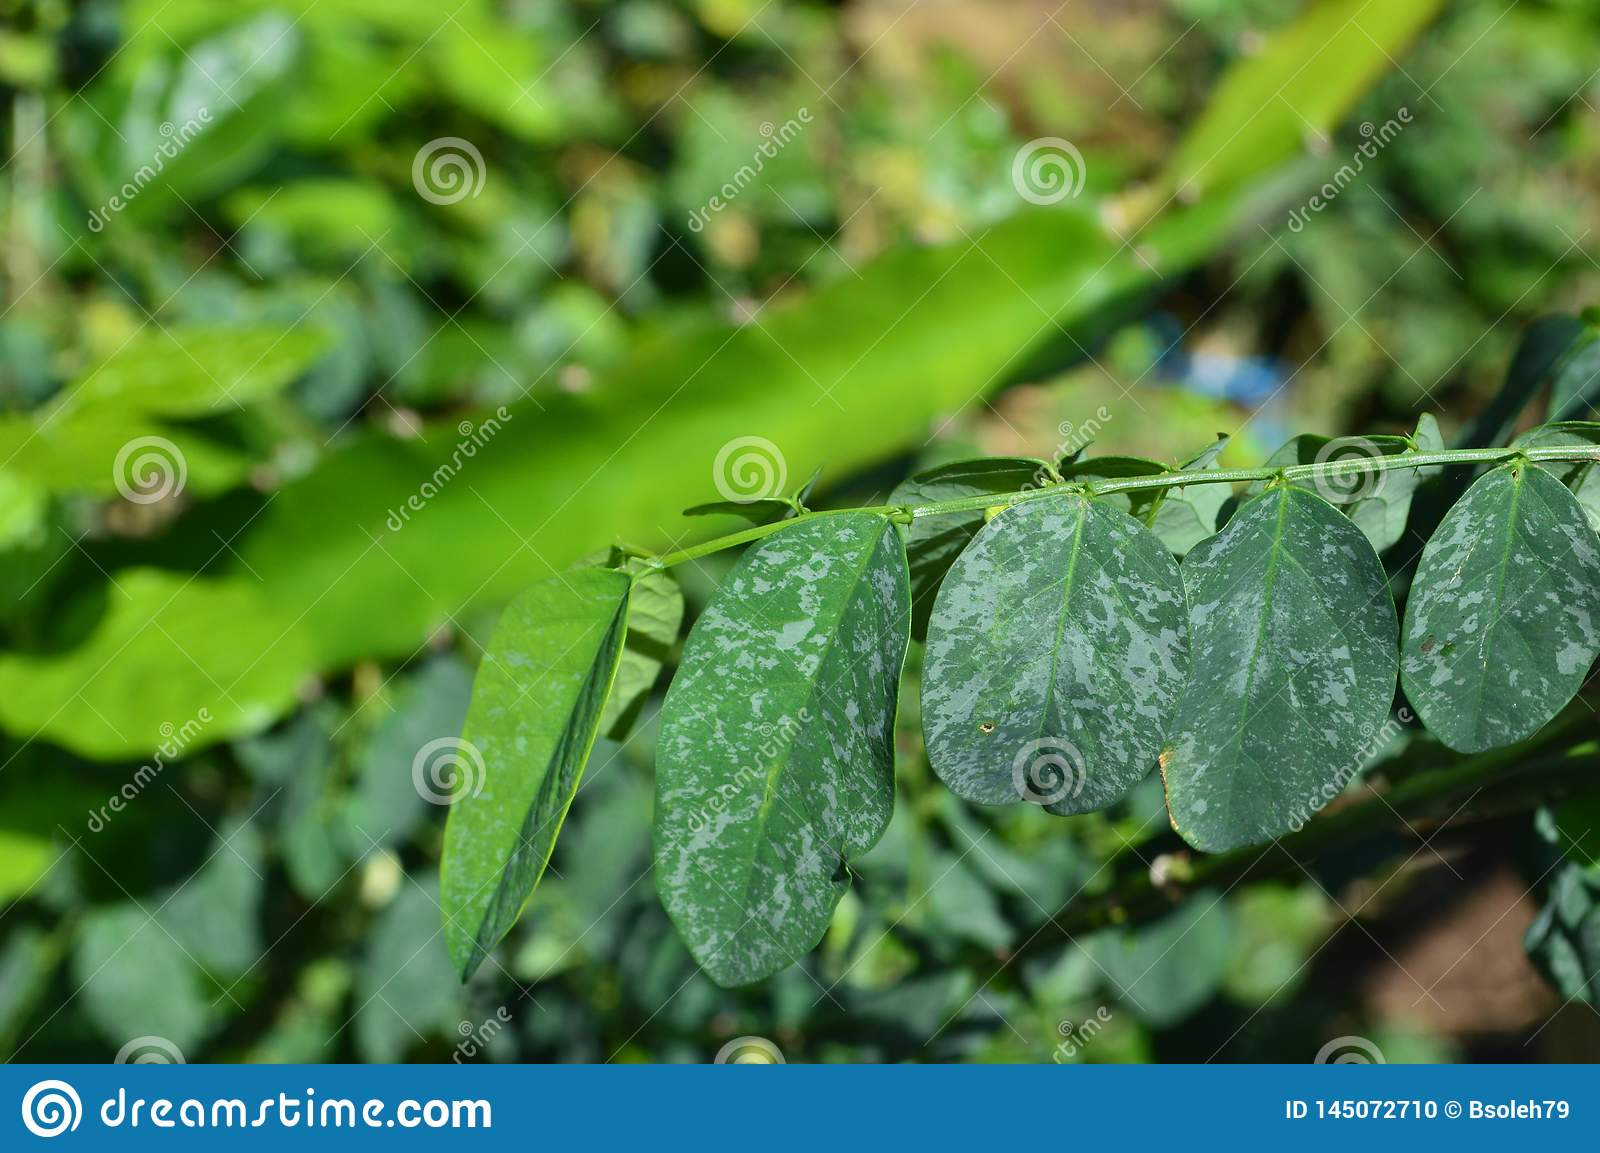 Texture and photos of green leaves in a tropical climate